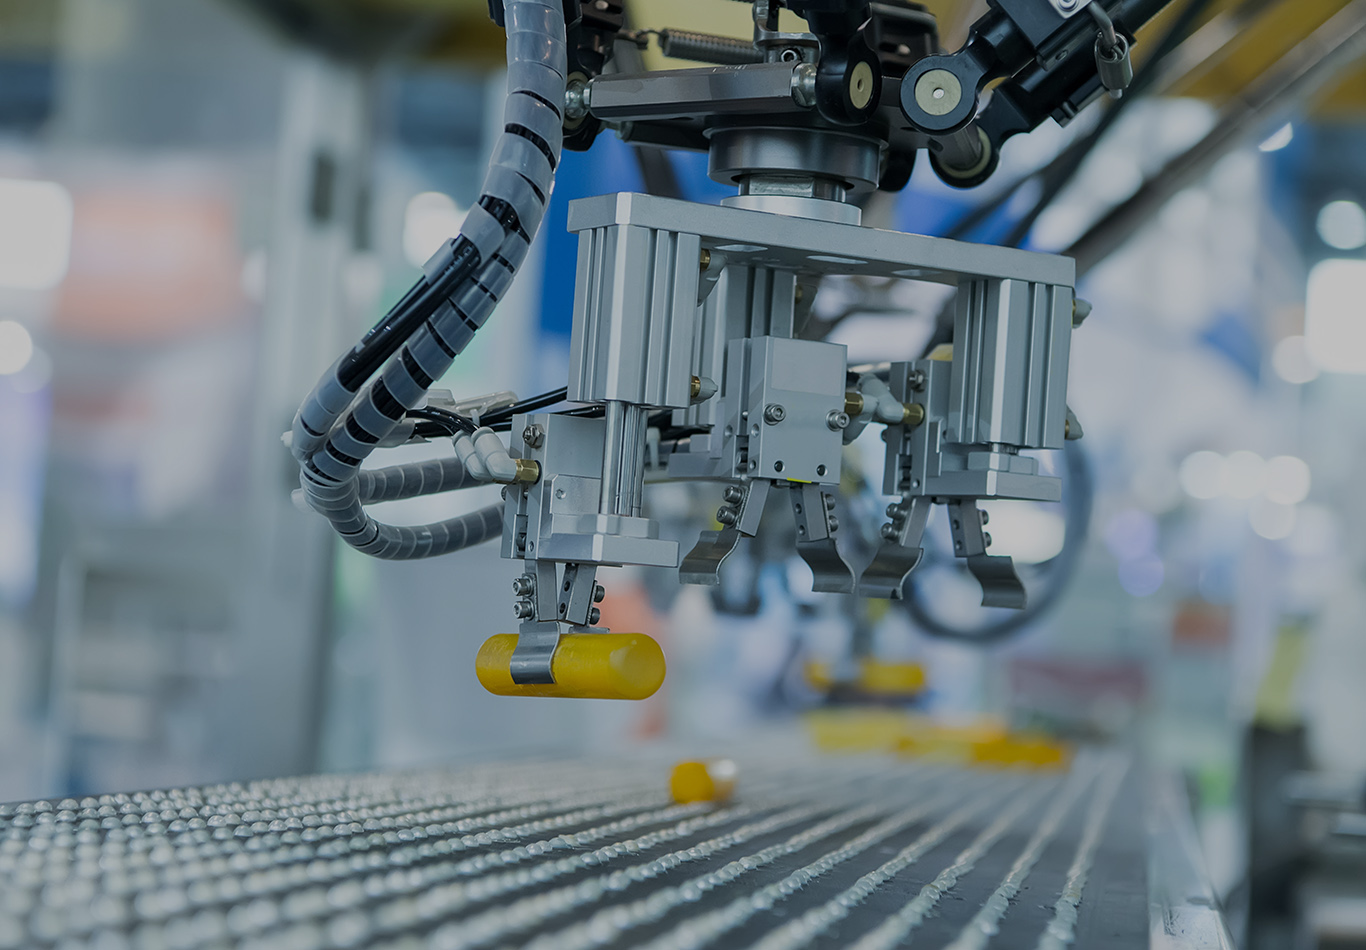 A robot on an assembly line is holding a yellow tube